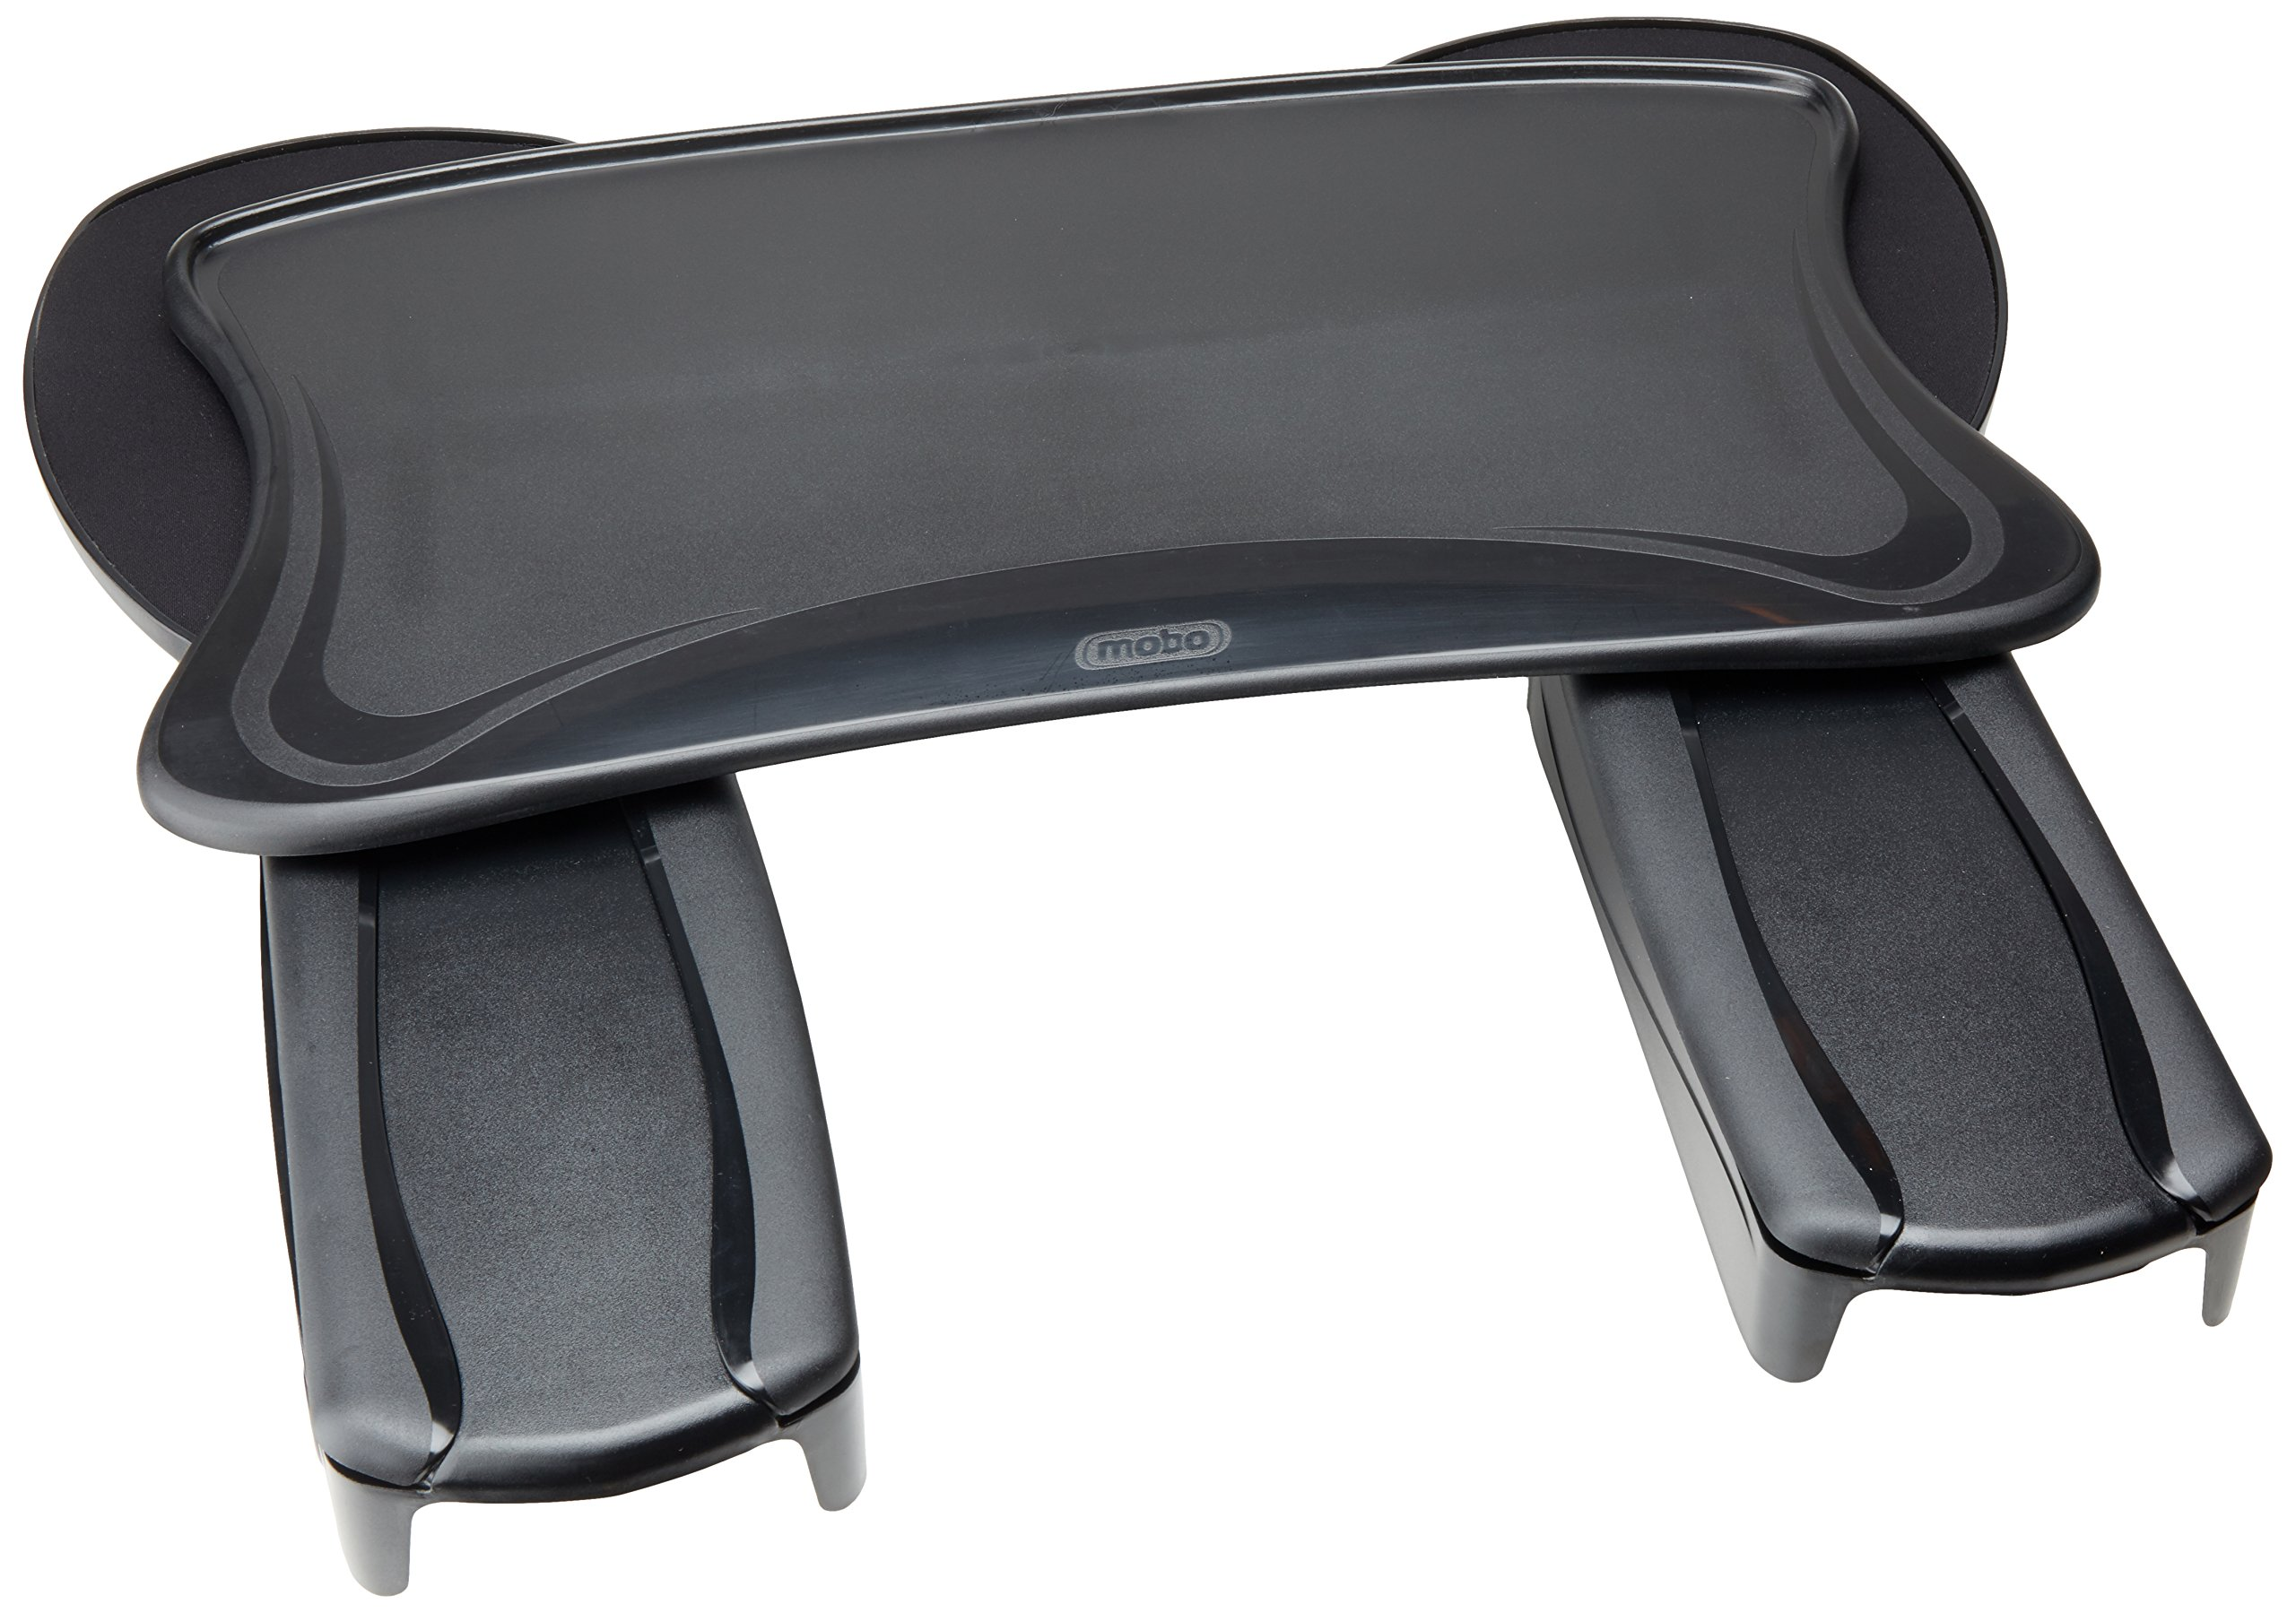 Mobo Chair Mount Ergo Keyboard and Mouse Tray System - 2.5-Inch x 12.5-Inch x 7.5-Inch - Black by Mobo